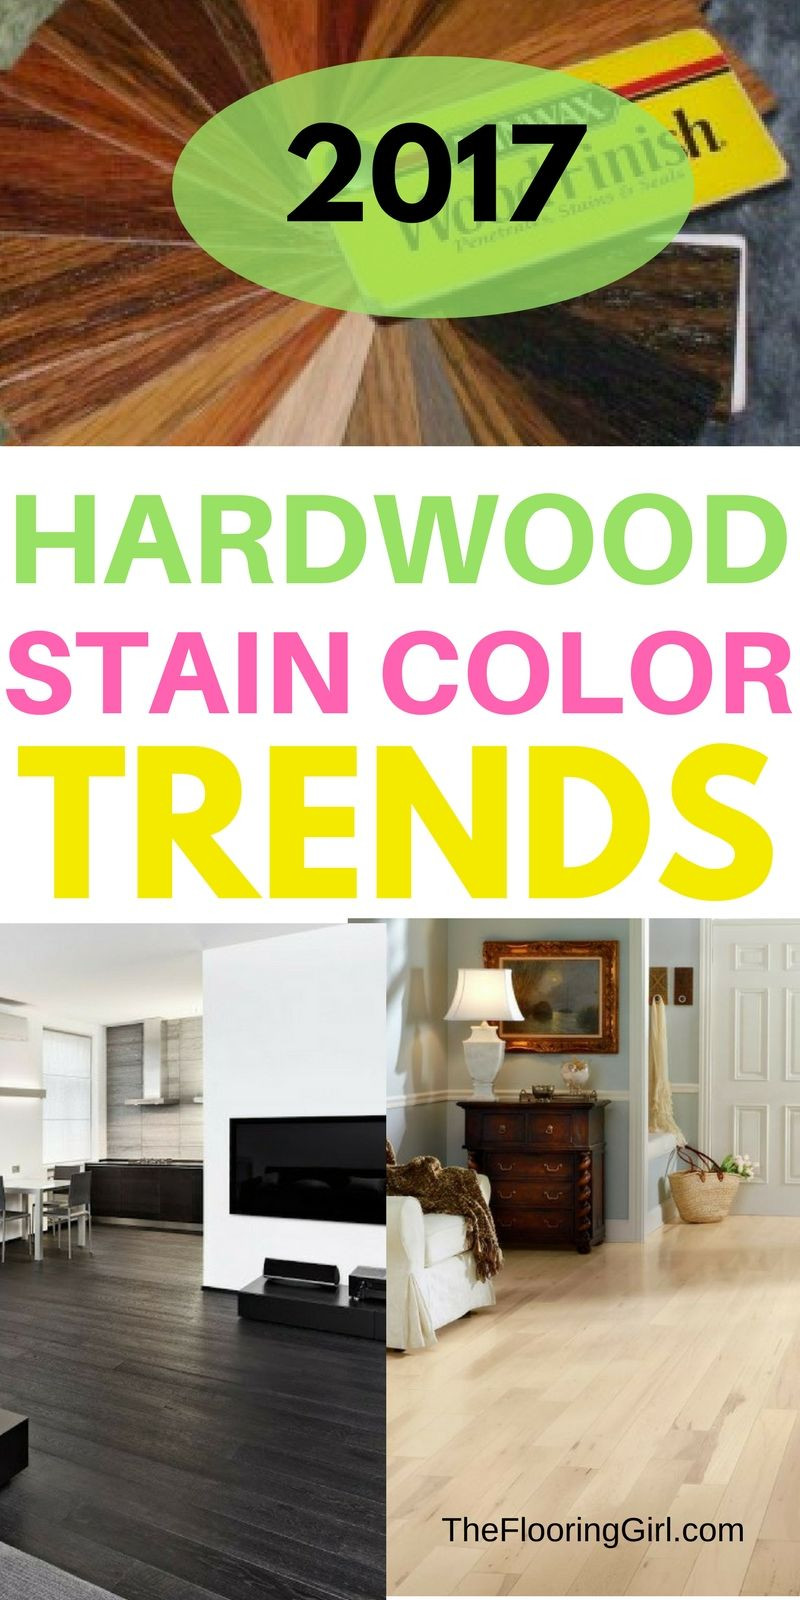 hardwood floor refinishing long island of hardwood flooring stain color trends 2018 more from the flooring with hardwood flooring stain color trends for 2017 hardwood colors that are in style theflooringgirl com